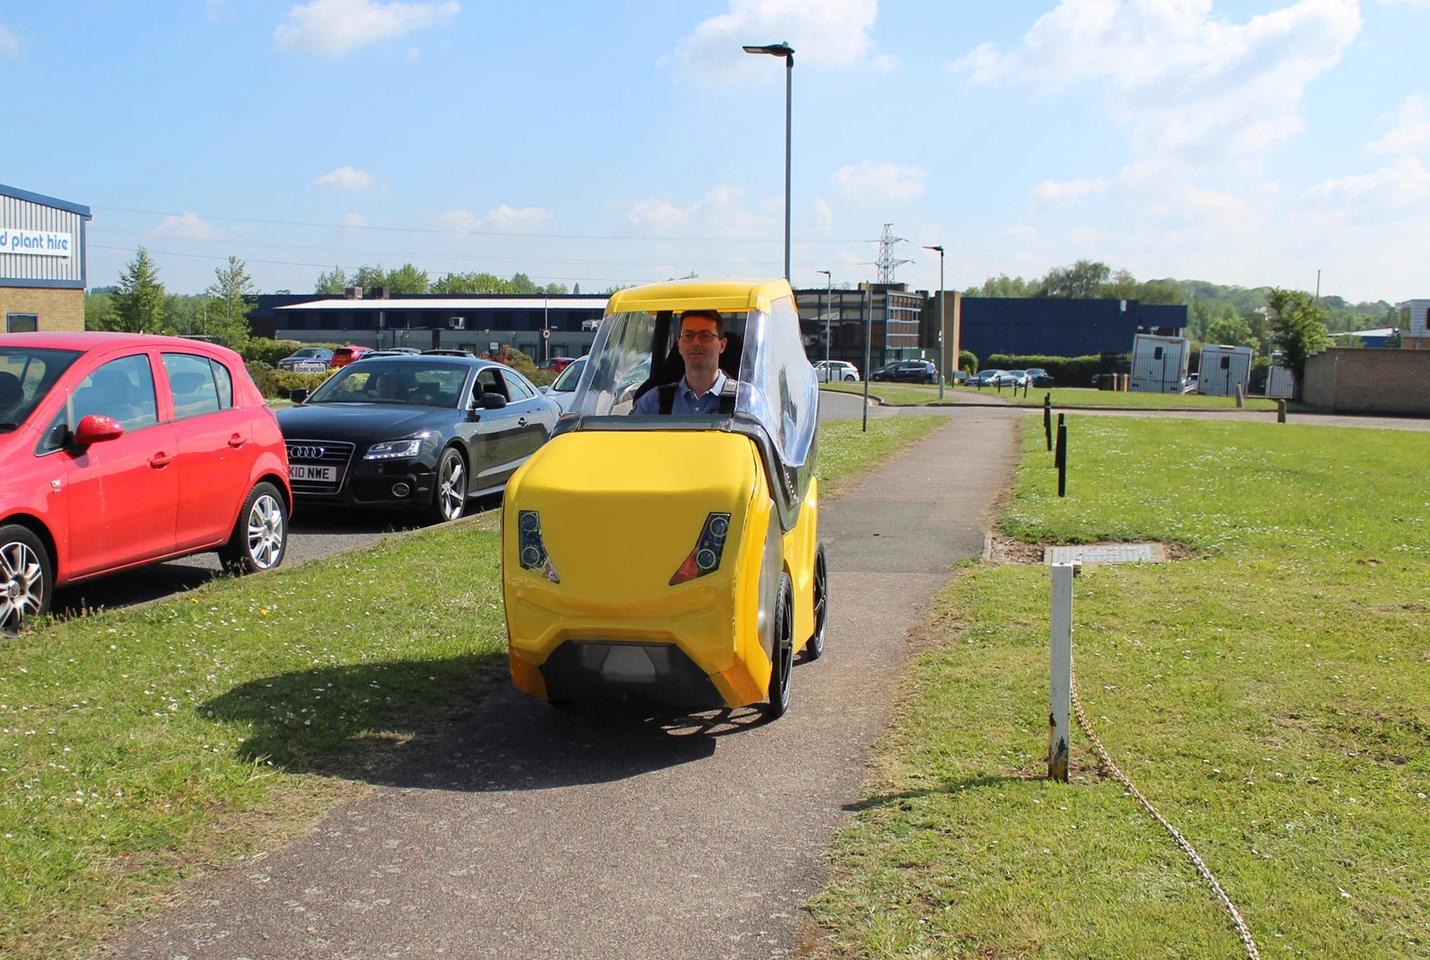 DryCycle founder Andy Murphy, in one of his vehicles